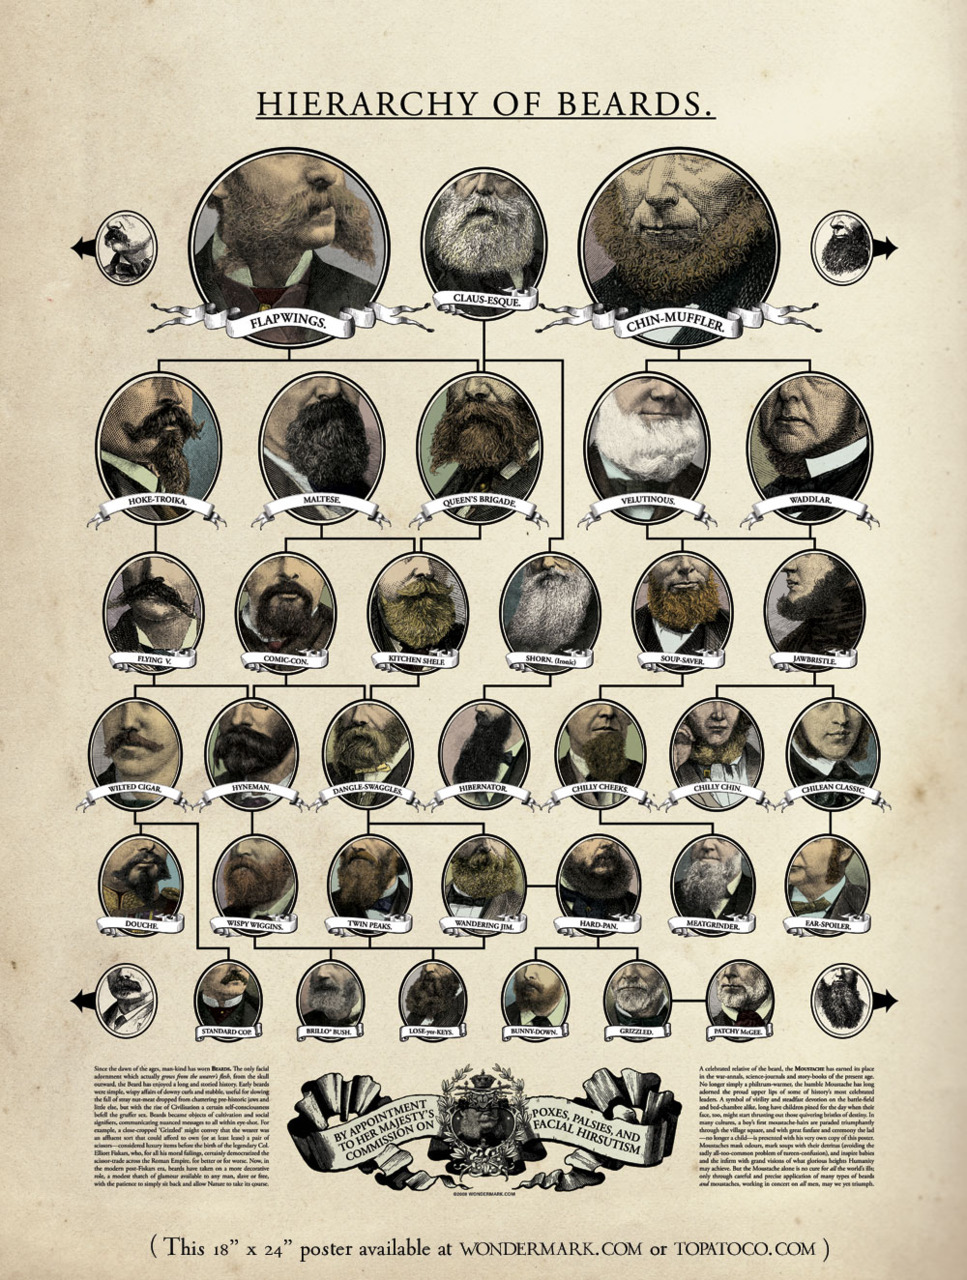 The Hierarchy ofBeards